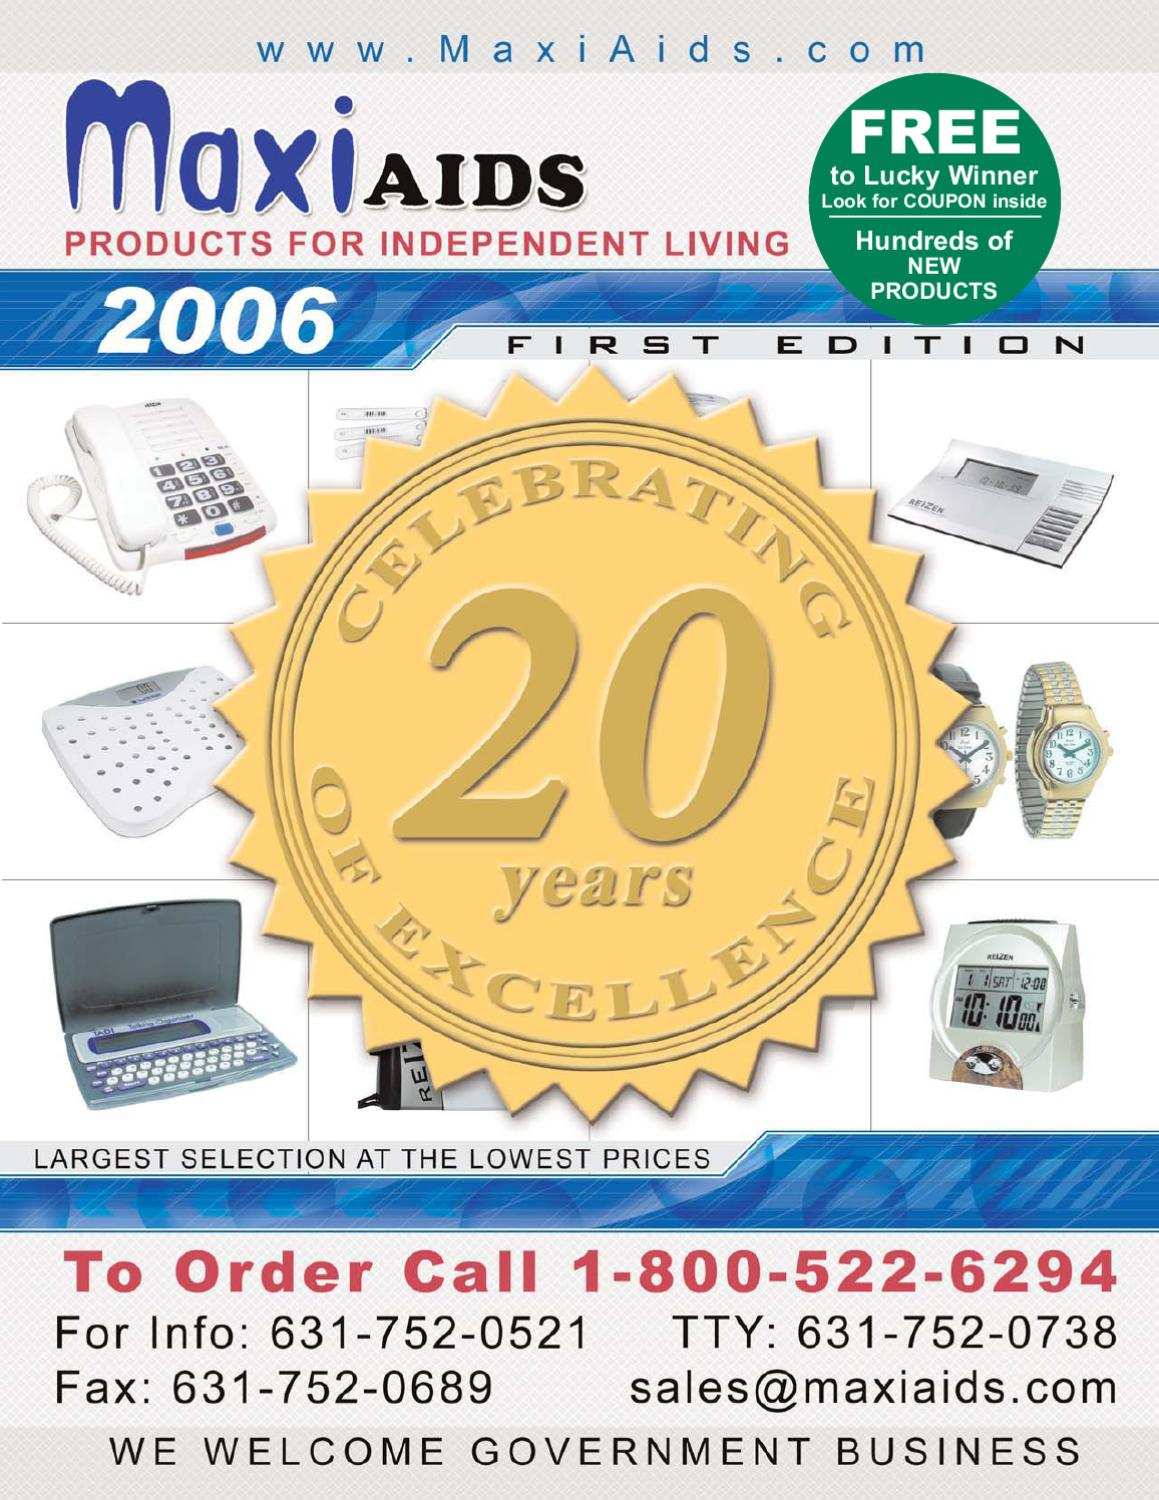 Maxiaids 2006 1st Edition Catalog By Maxiaidscom Issuu Mdisk Kabel Data Ampamp Charger Usb Micro Steel Mesh G322